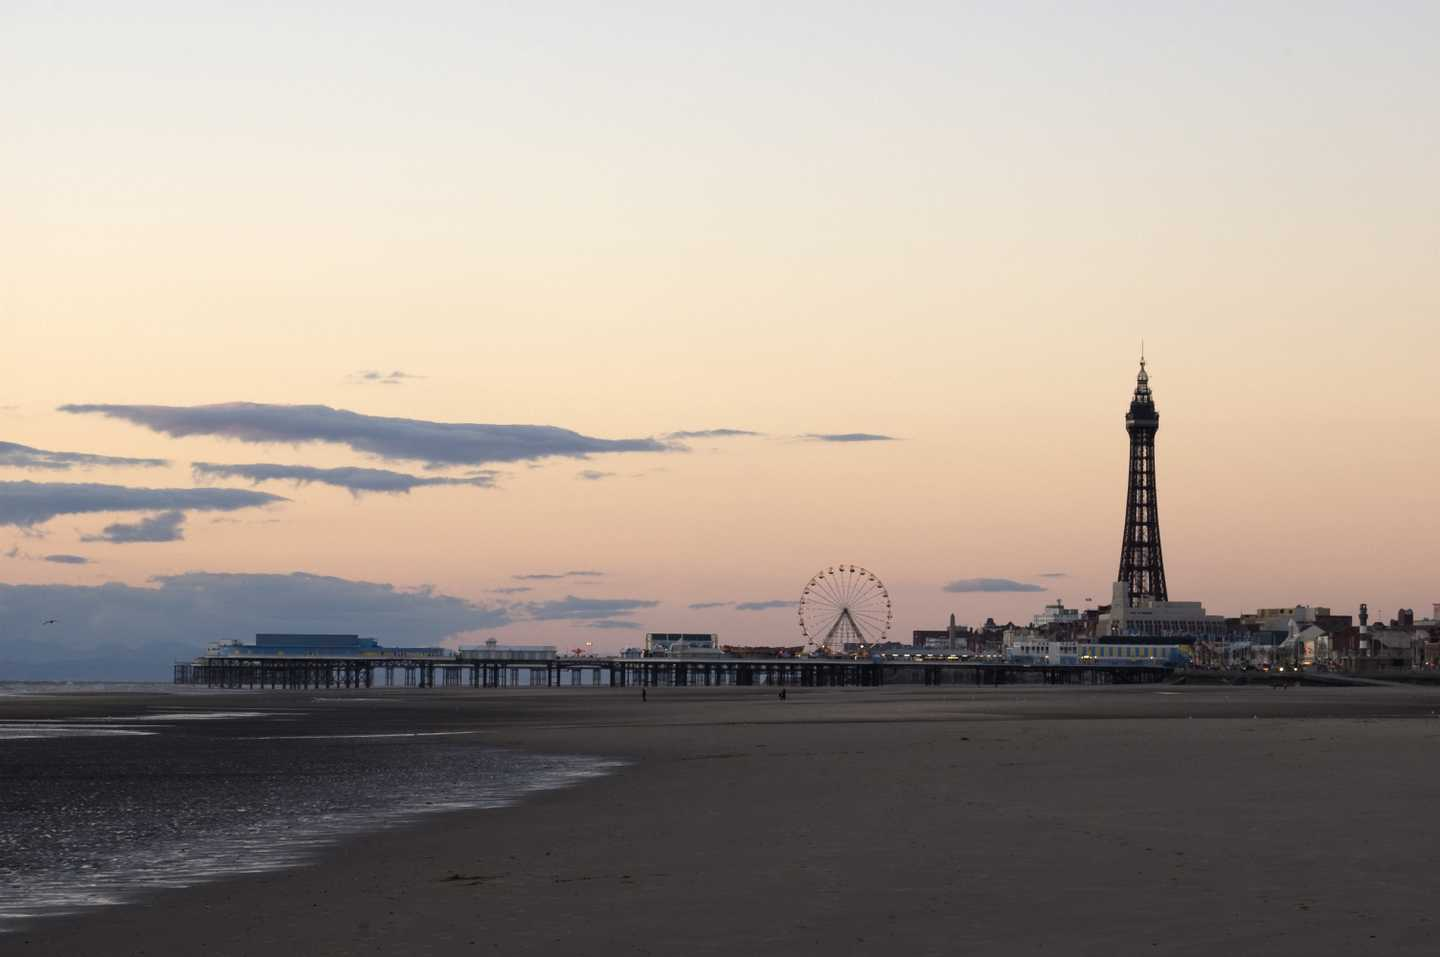 A silhouette of Blackpool tower at sunset